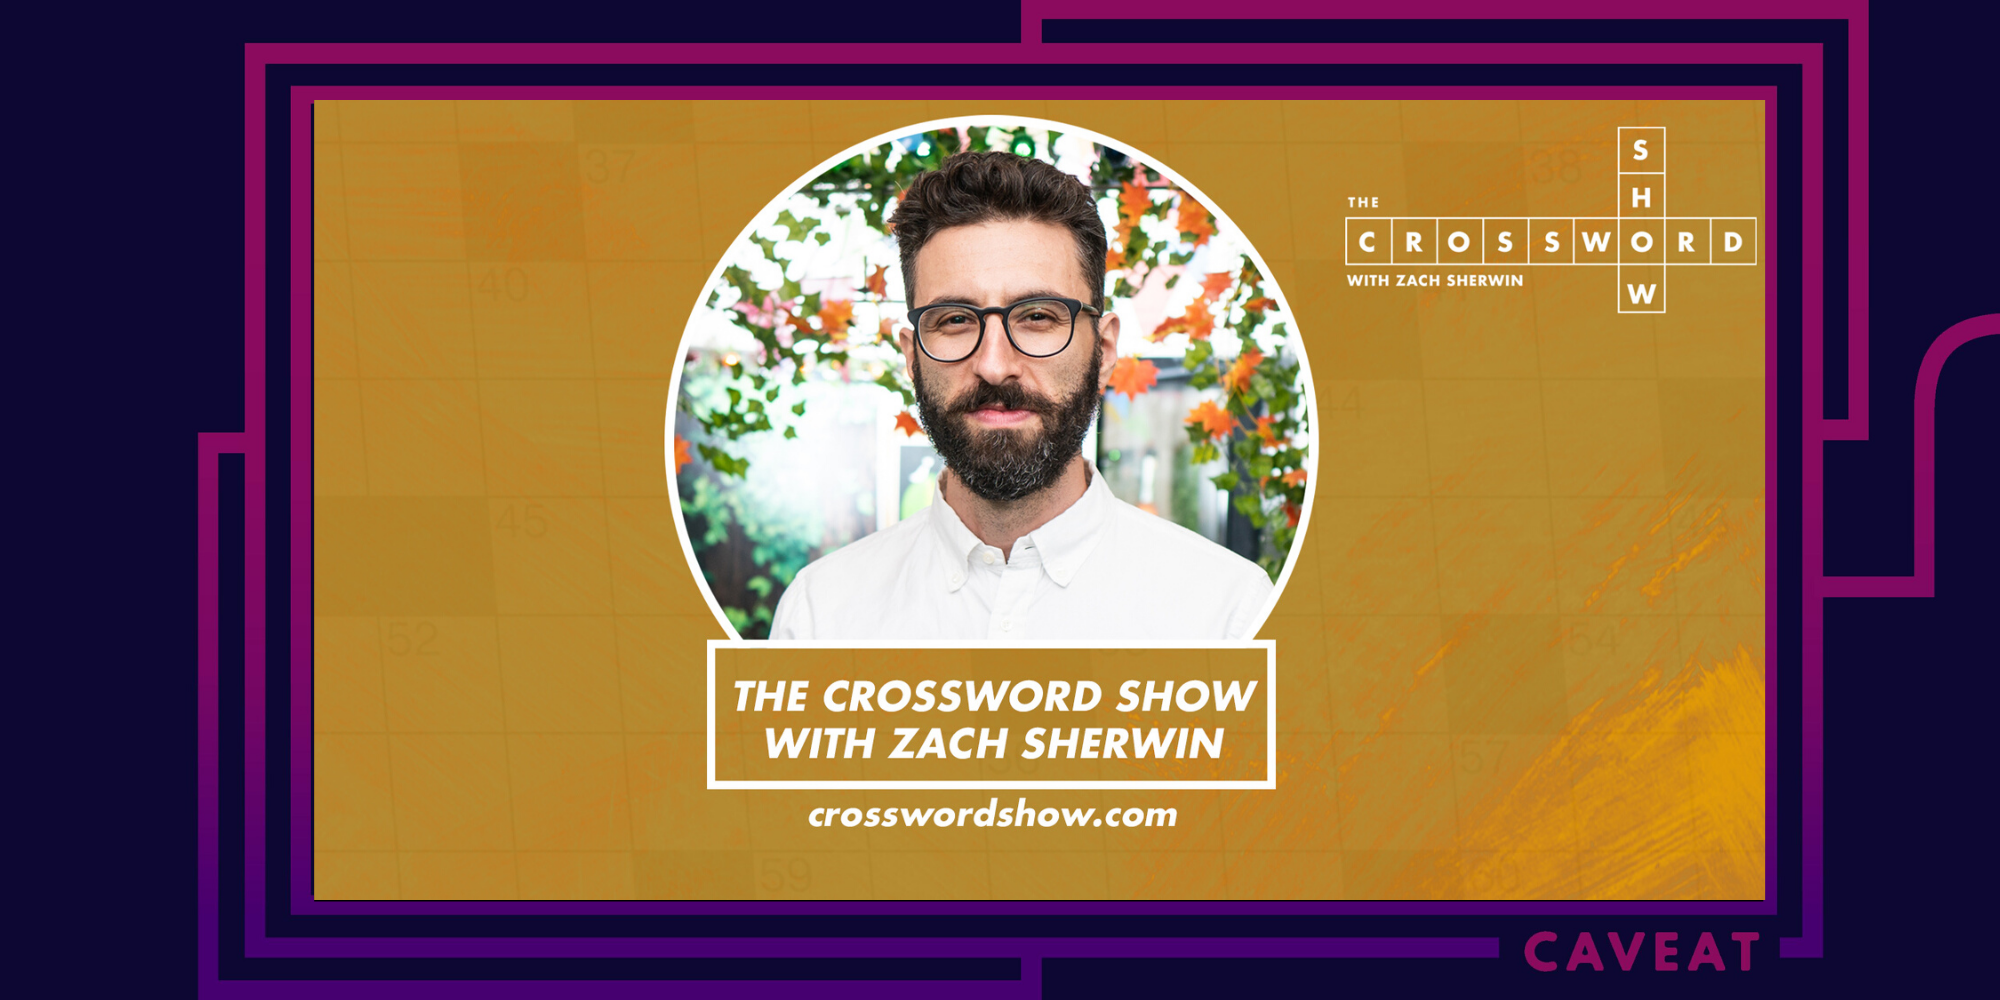 1907 image - The Crossword Show with Zach Sherwin